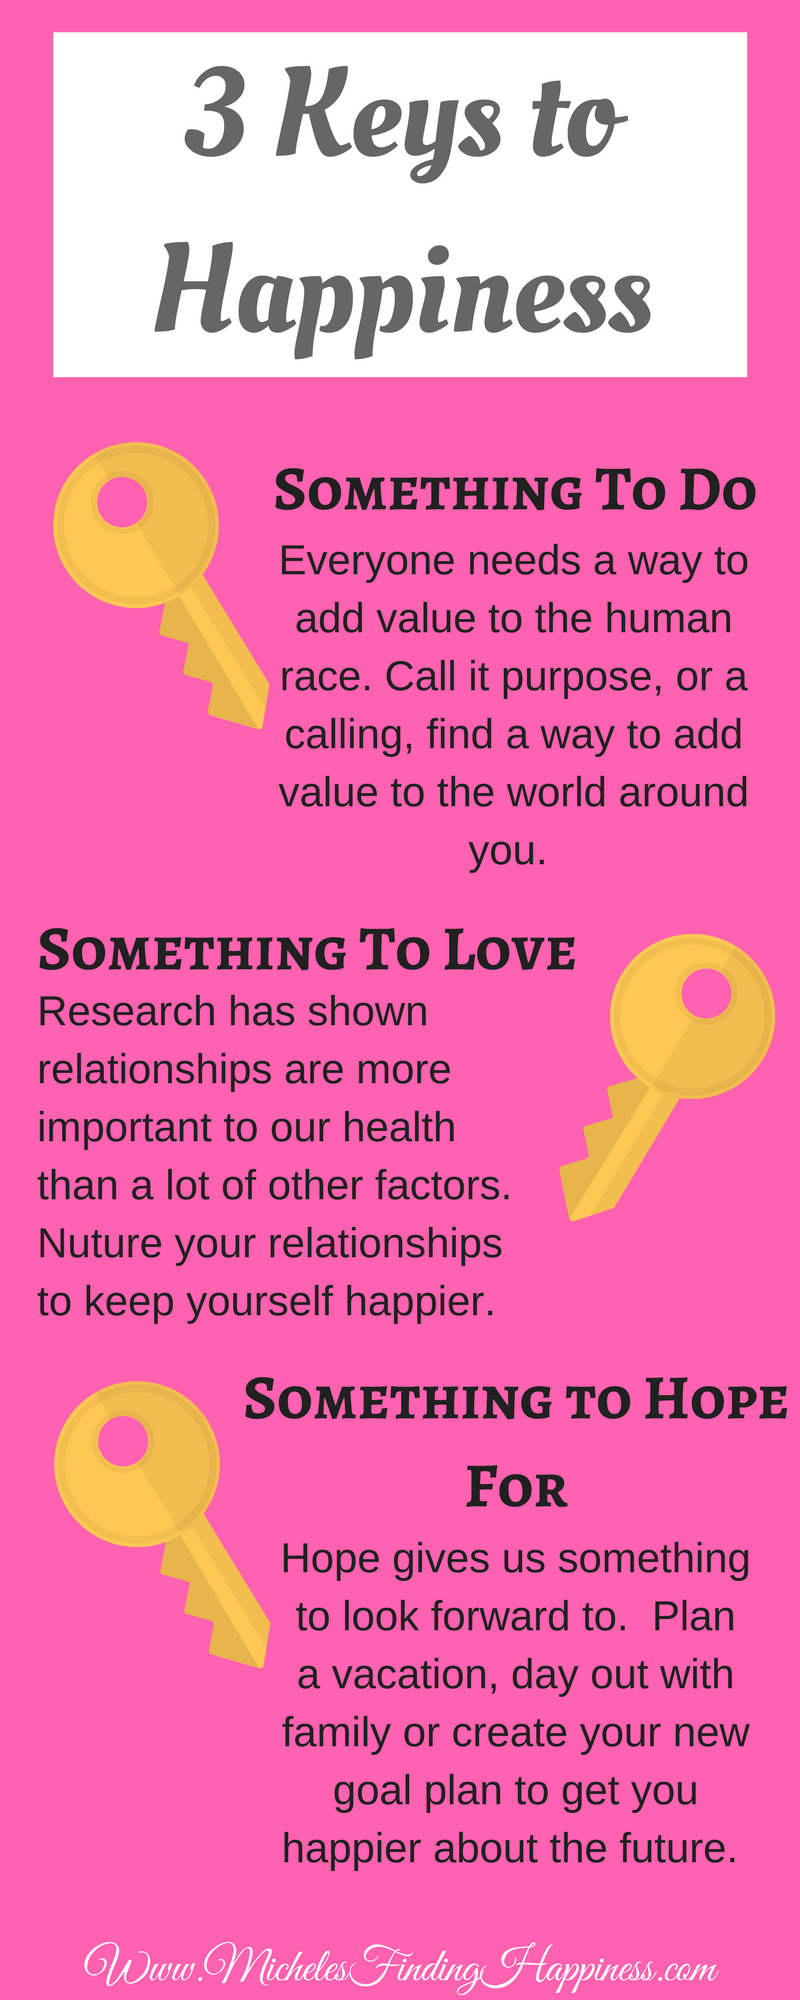 How Our Helpline Works